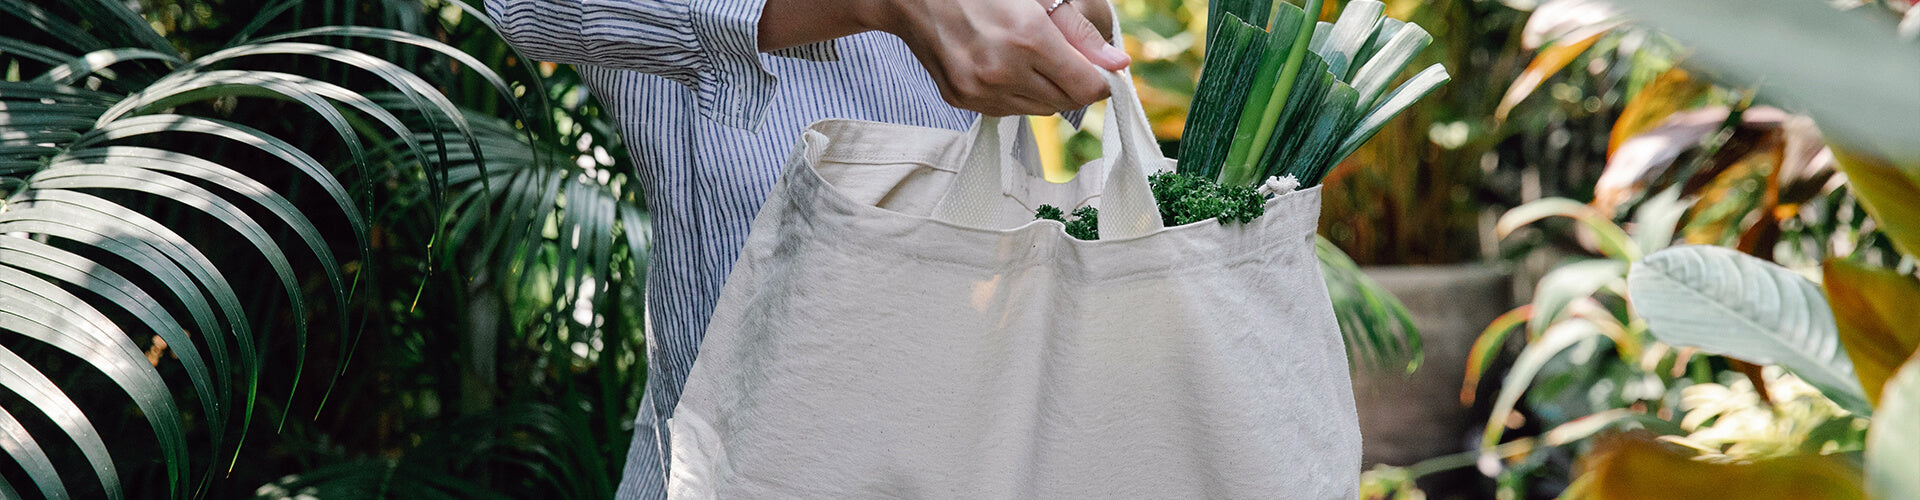 Woman with environmentally friendly bag